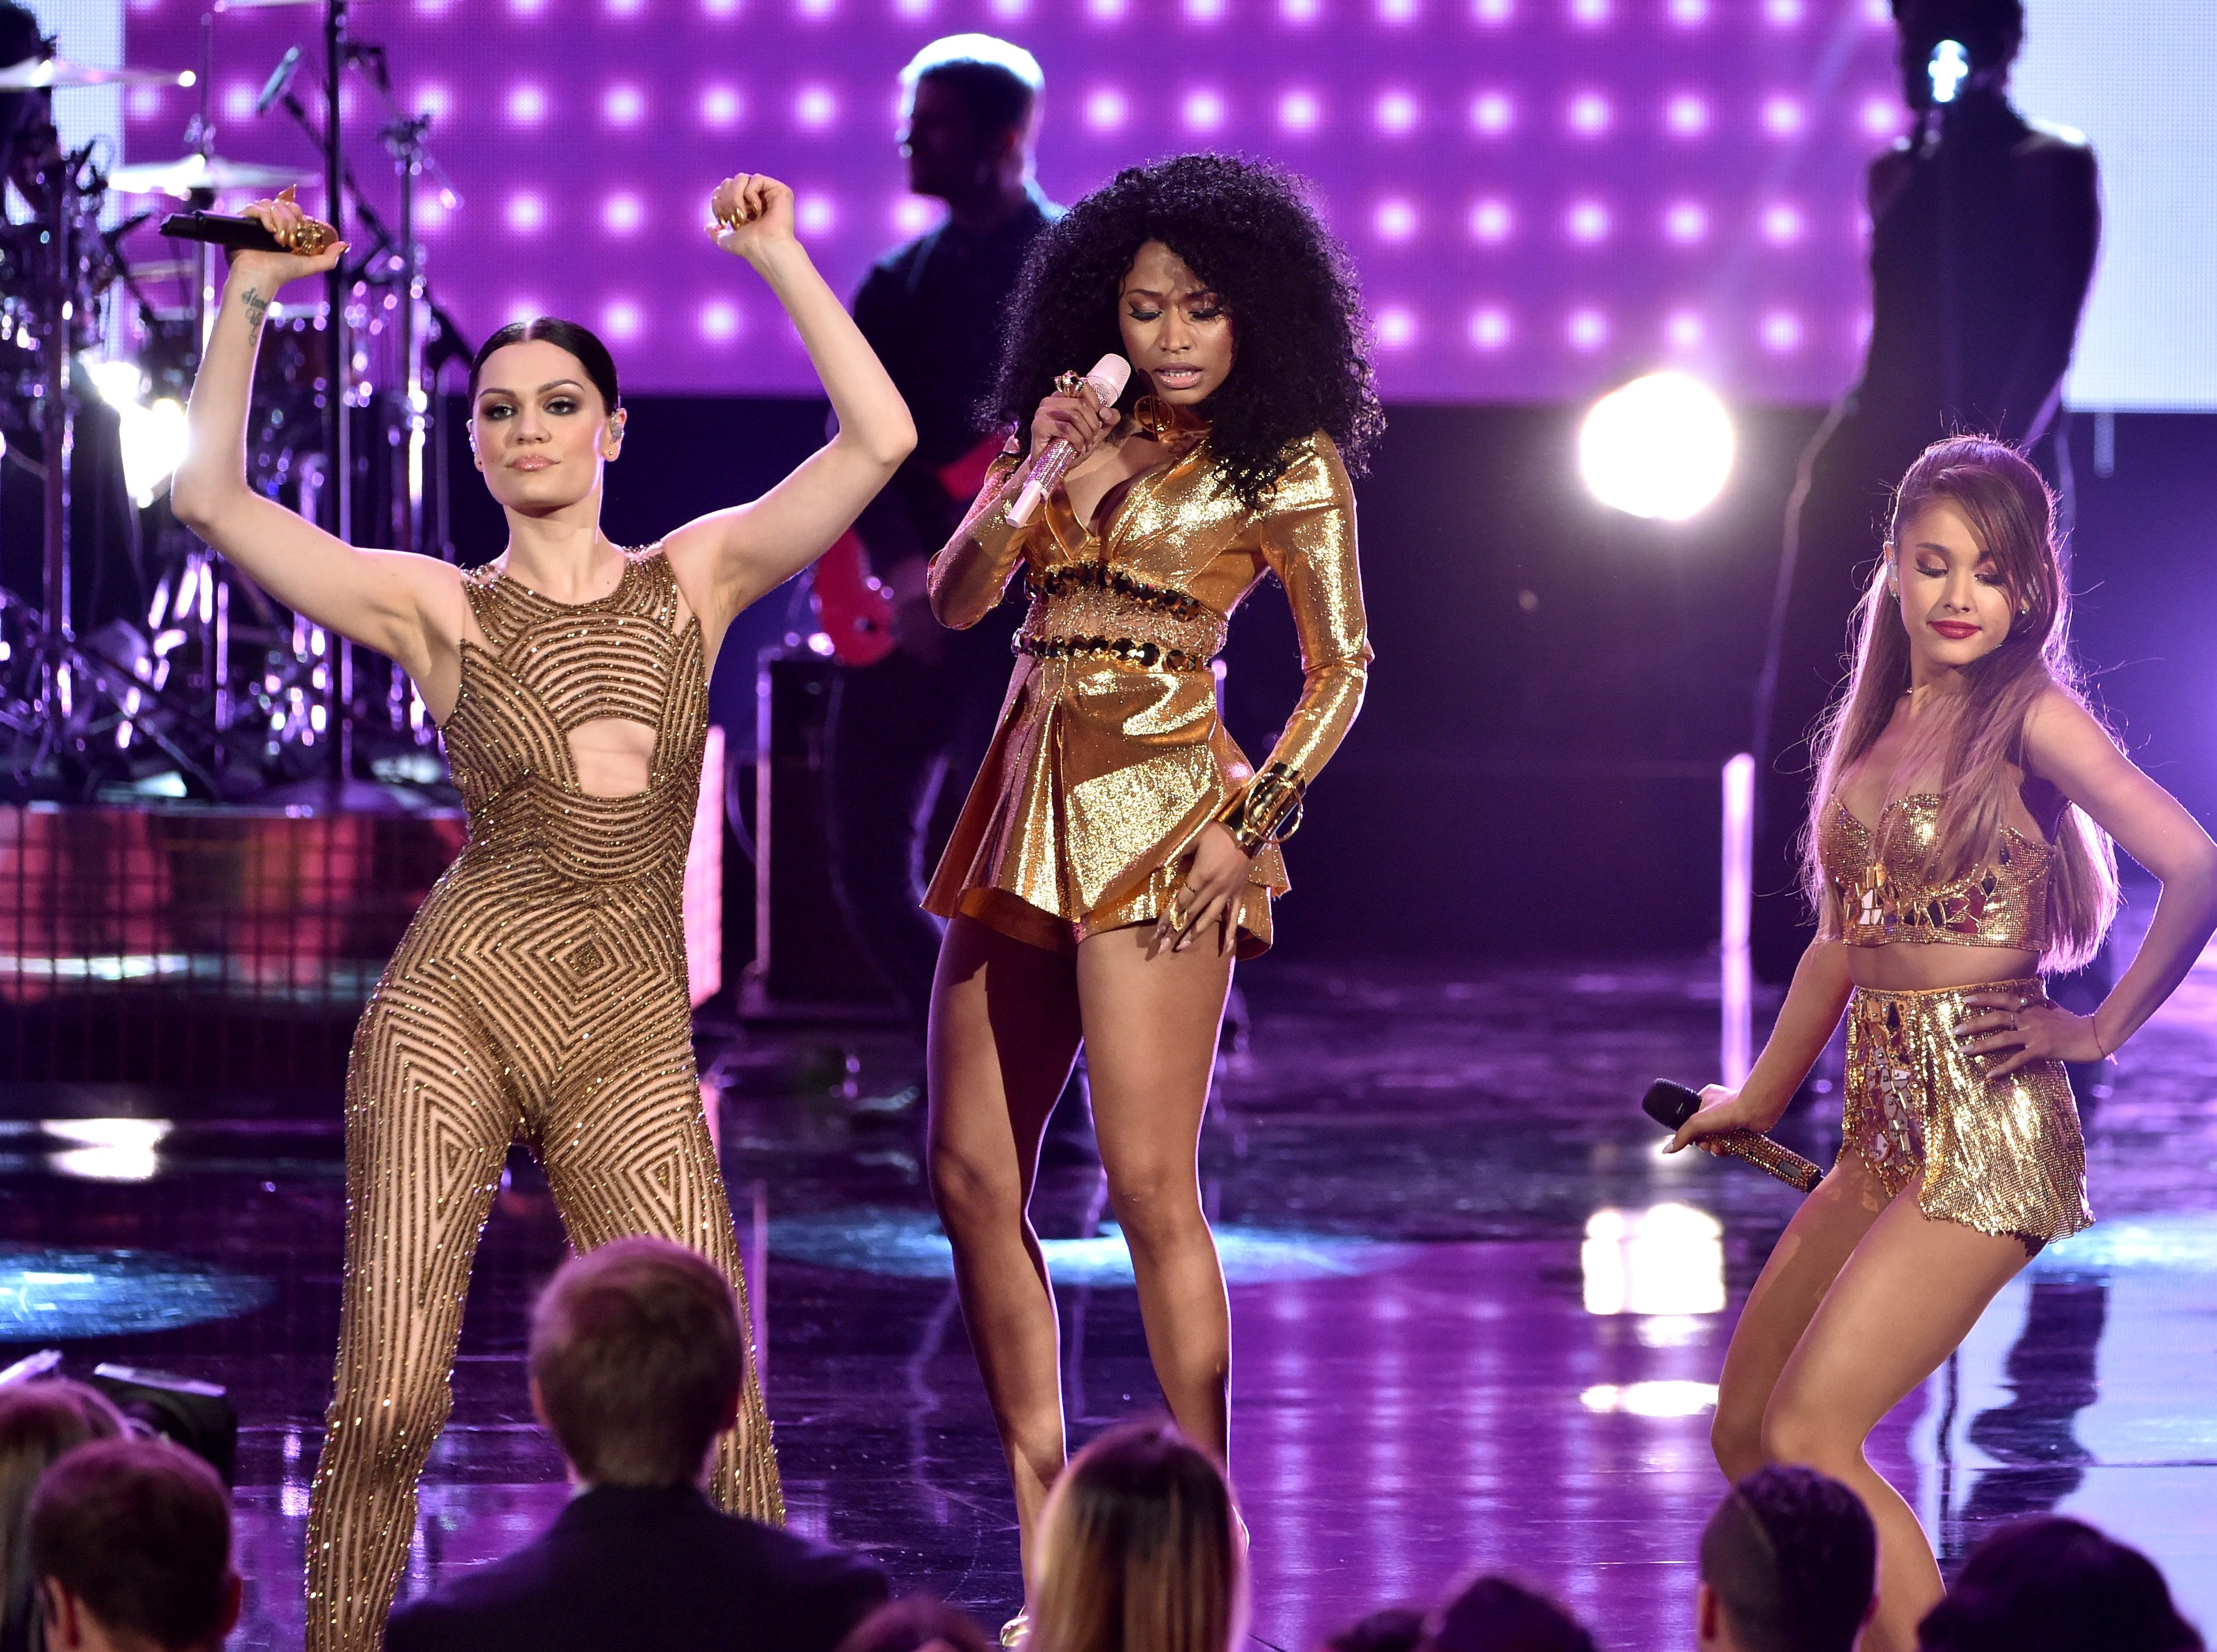 LOS ANGELES, CA - NOVEMBER 23:  (L-R) Recording artists Charli XCX, Nicki Minaj, and Ariana Grande perform onstage at the 2014 American Music Awards at Nokia Theatre L.A. Live on November 23, 2014 in Los Angeles, California.  (Photo by Kevin Winter/Getty Images) ORG XMIT: 522503943 ORIG FILE ID: 459489566